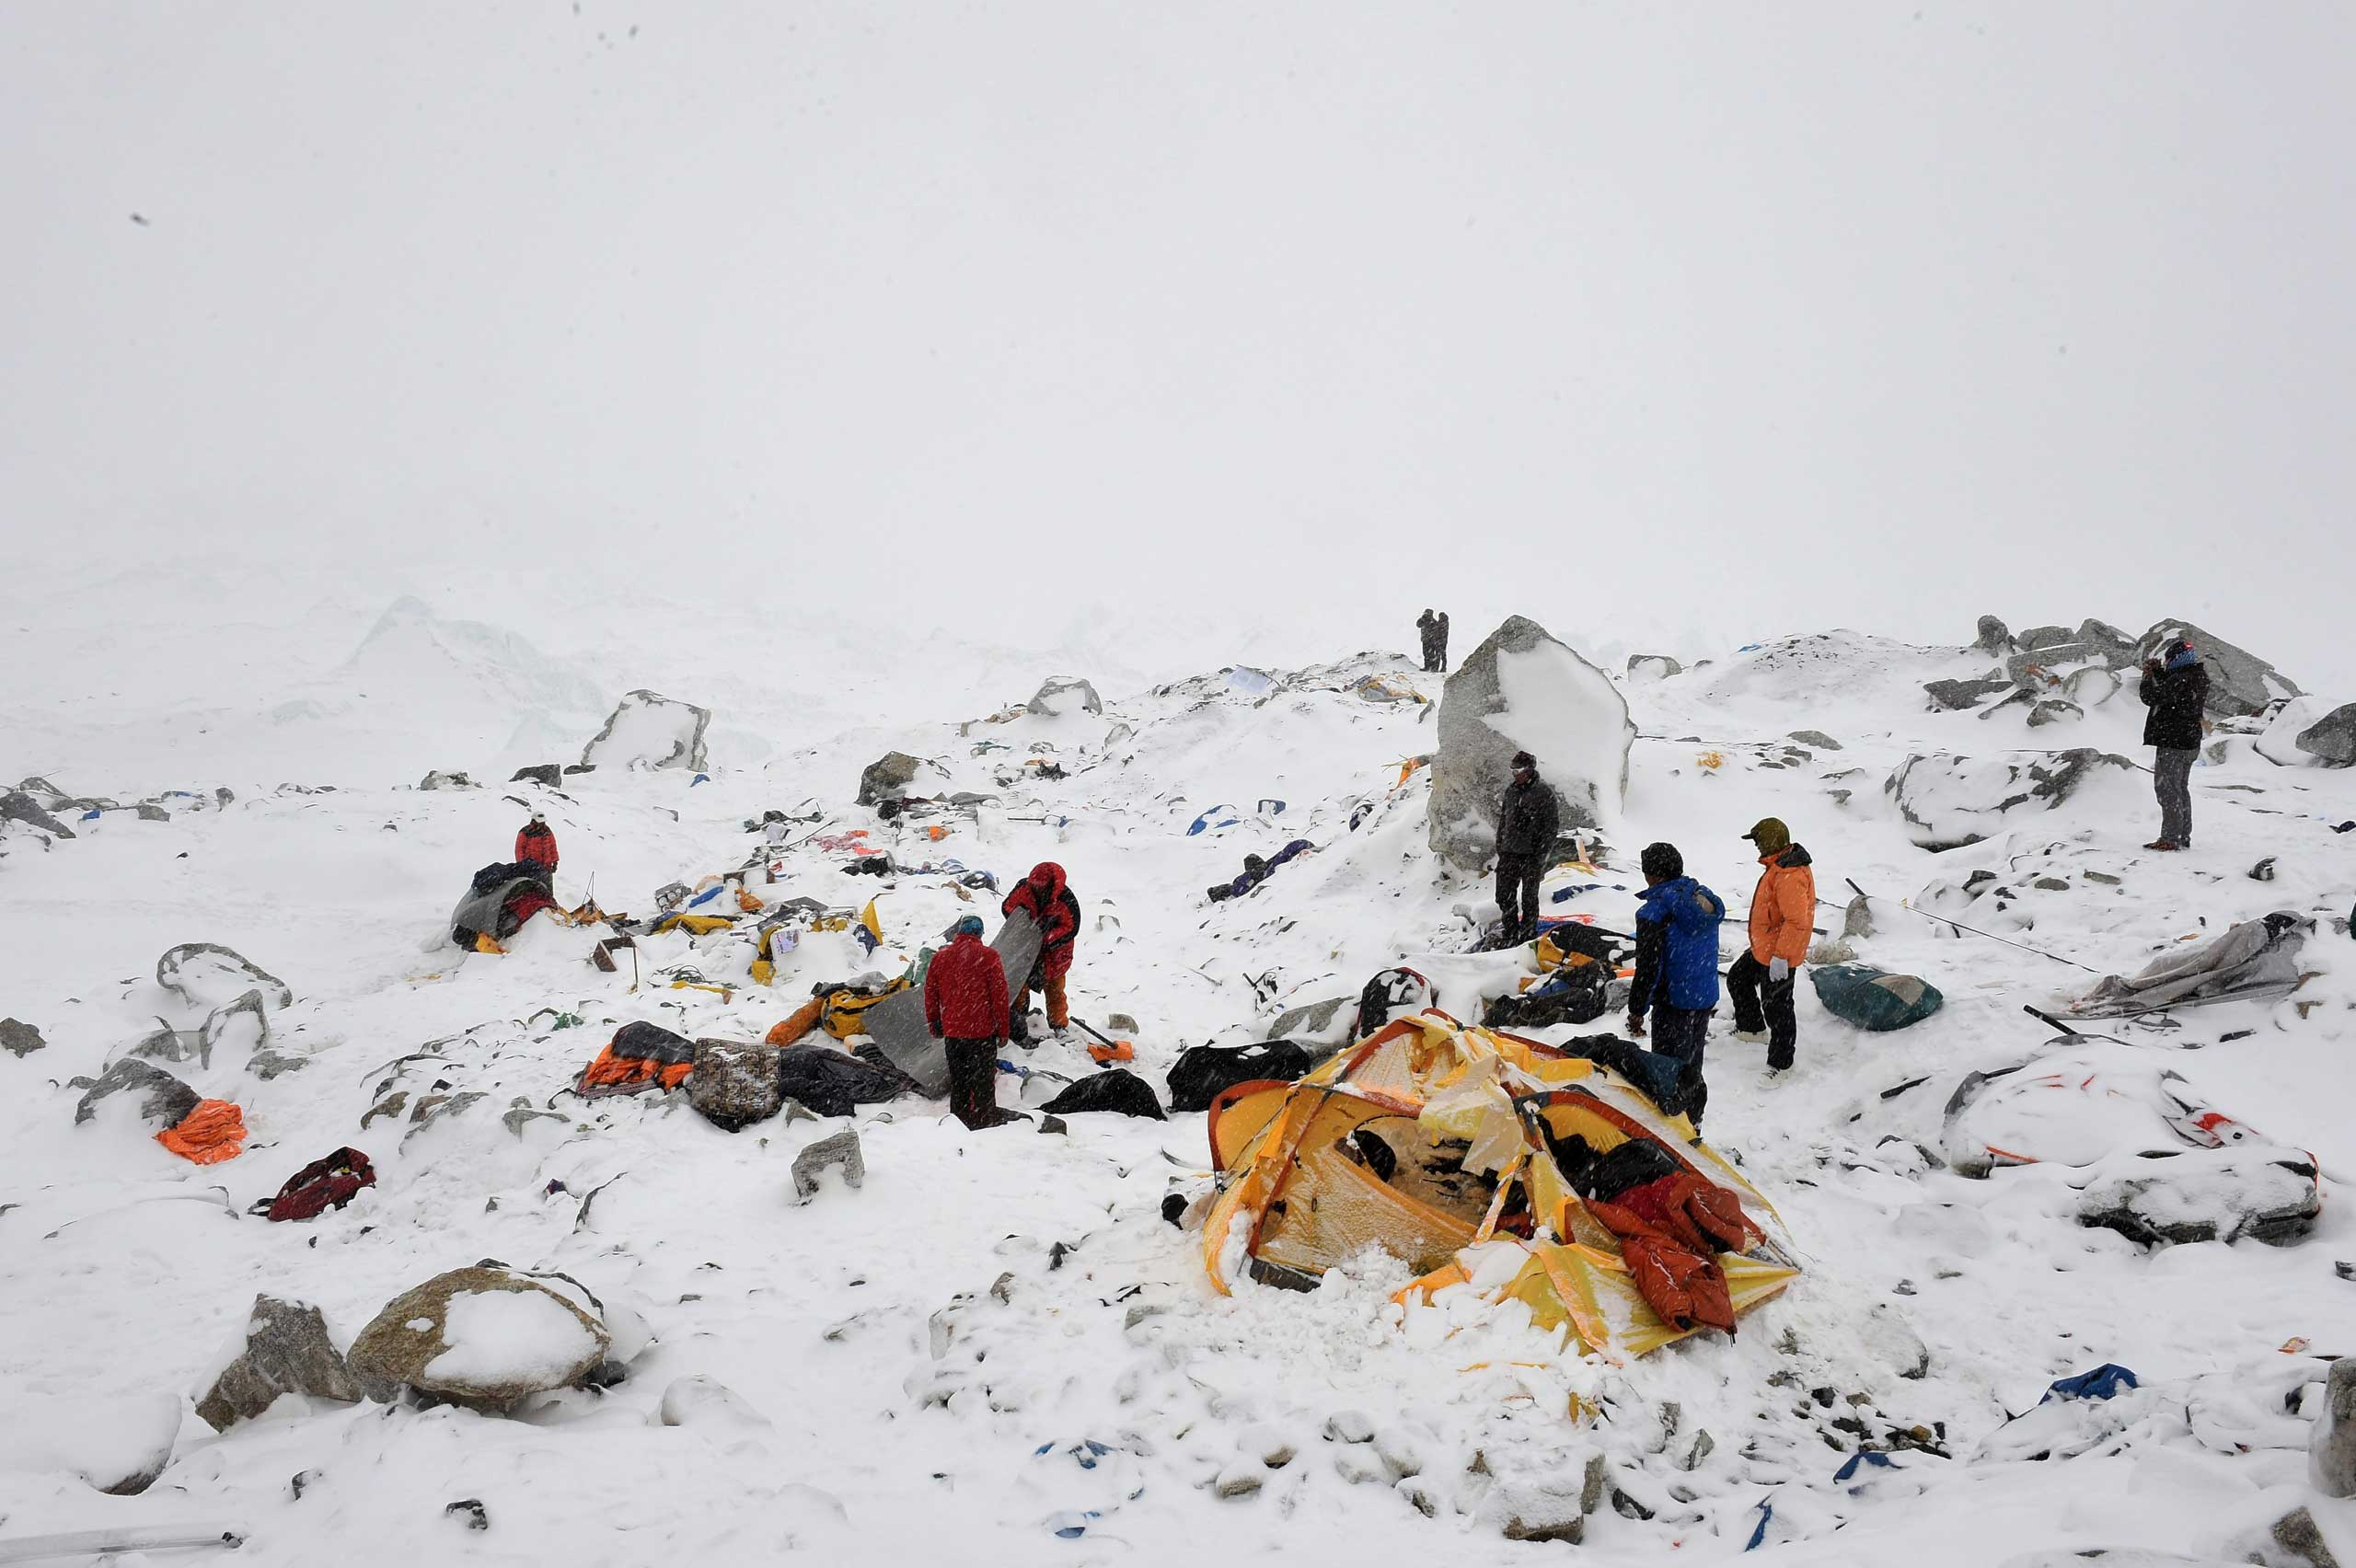 Rescuers look for survivors after the avalanche that was triggered by an earthquake outside Kathmandu, Nepal, on April 25, 2015.